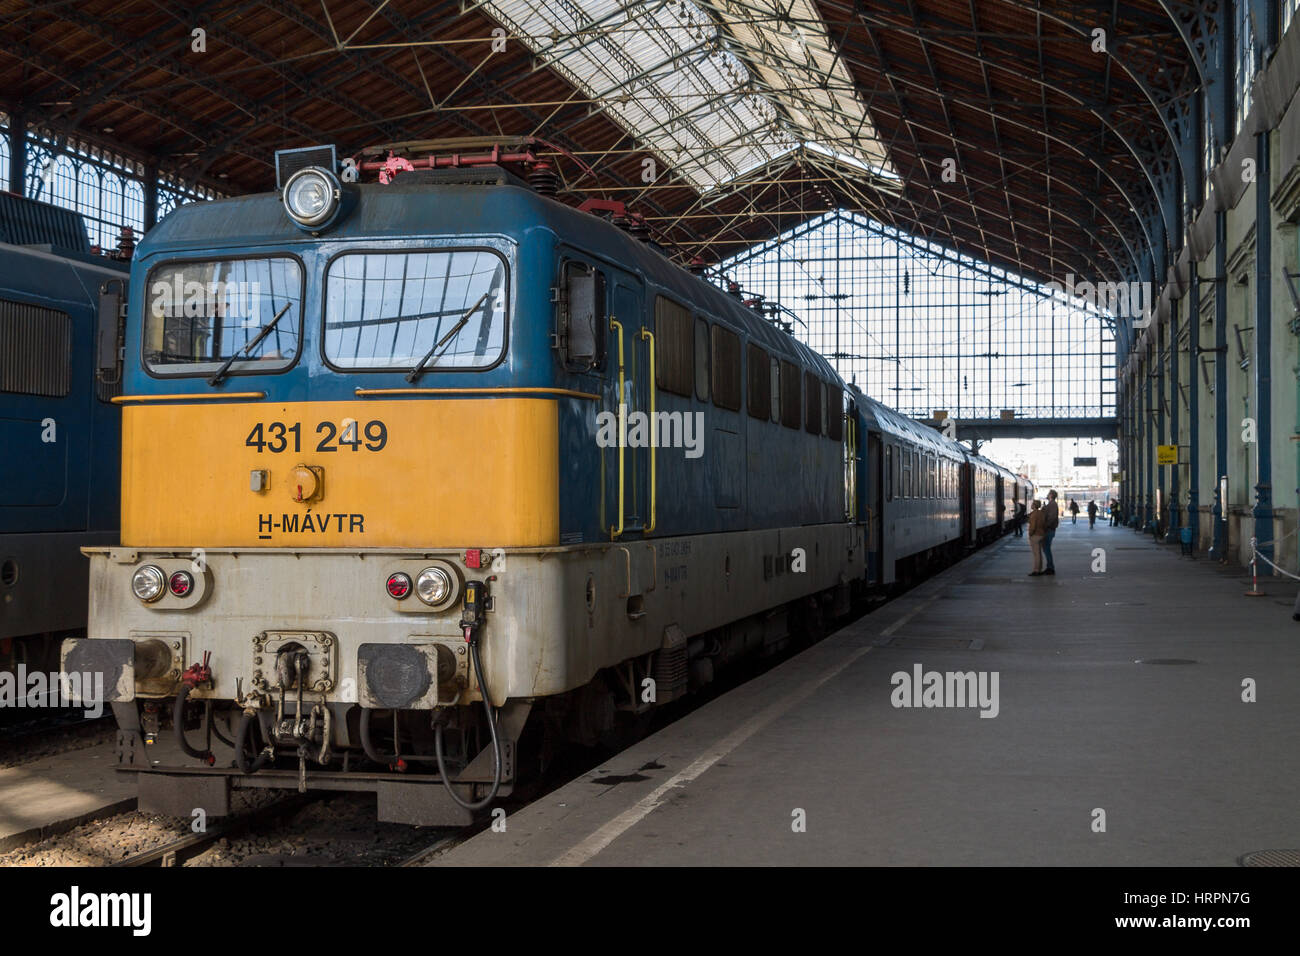 A passenger train in the Nyugati Railway Station in Budapest, Hungary - Stock Image